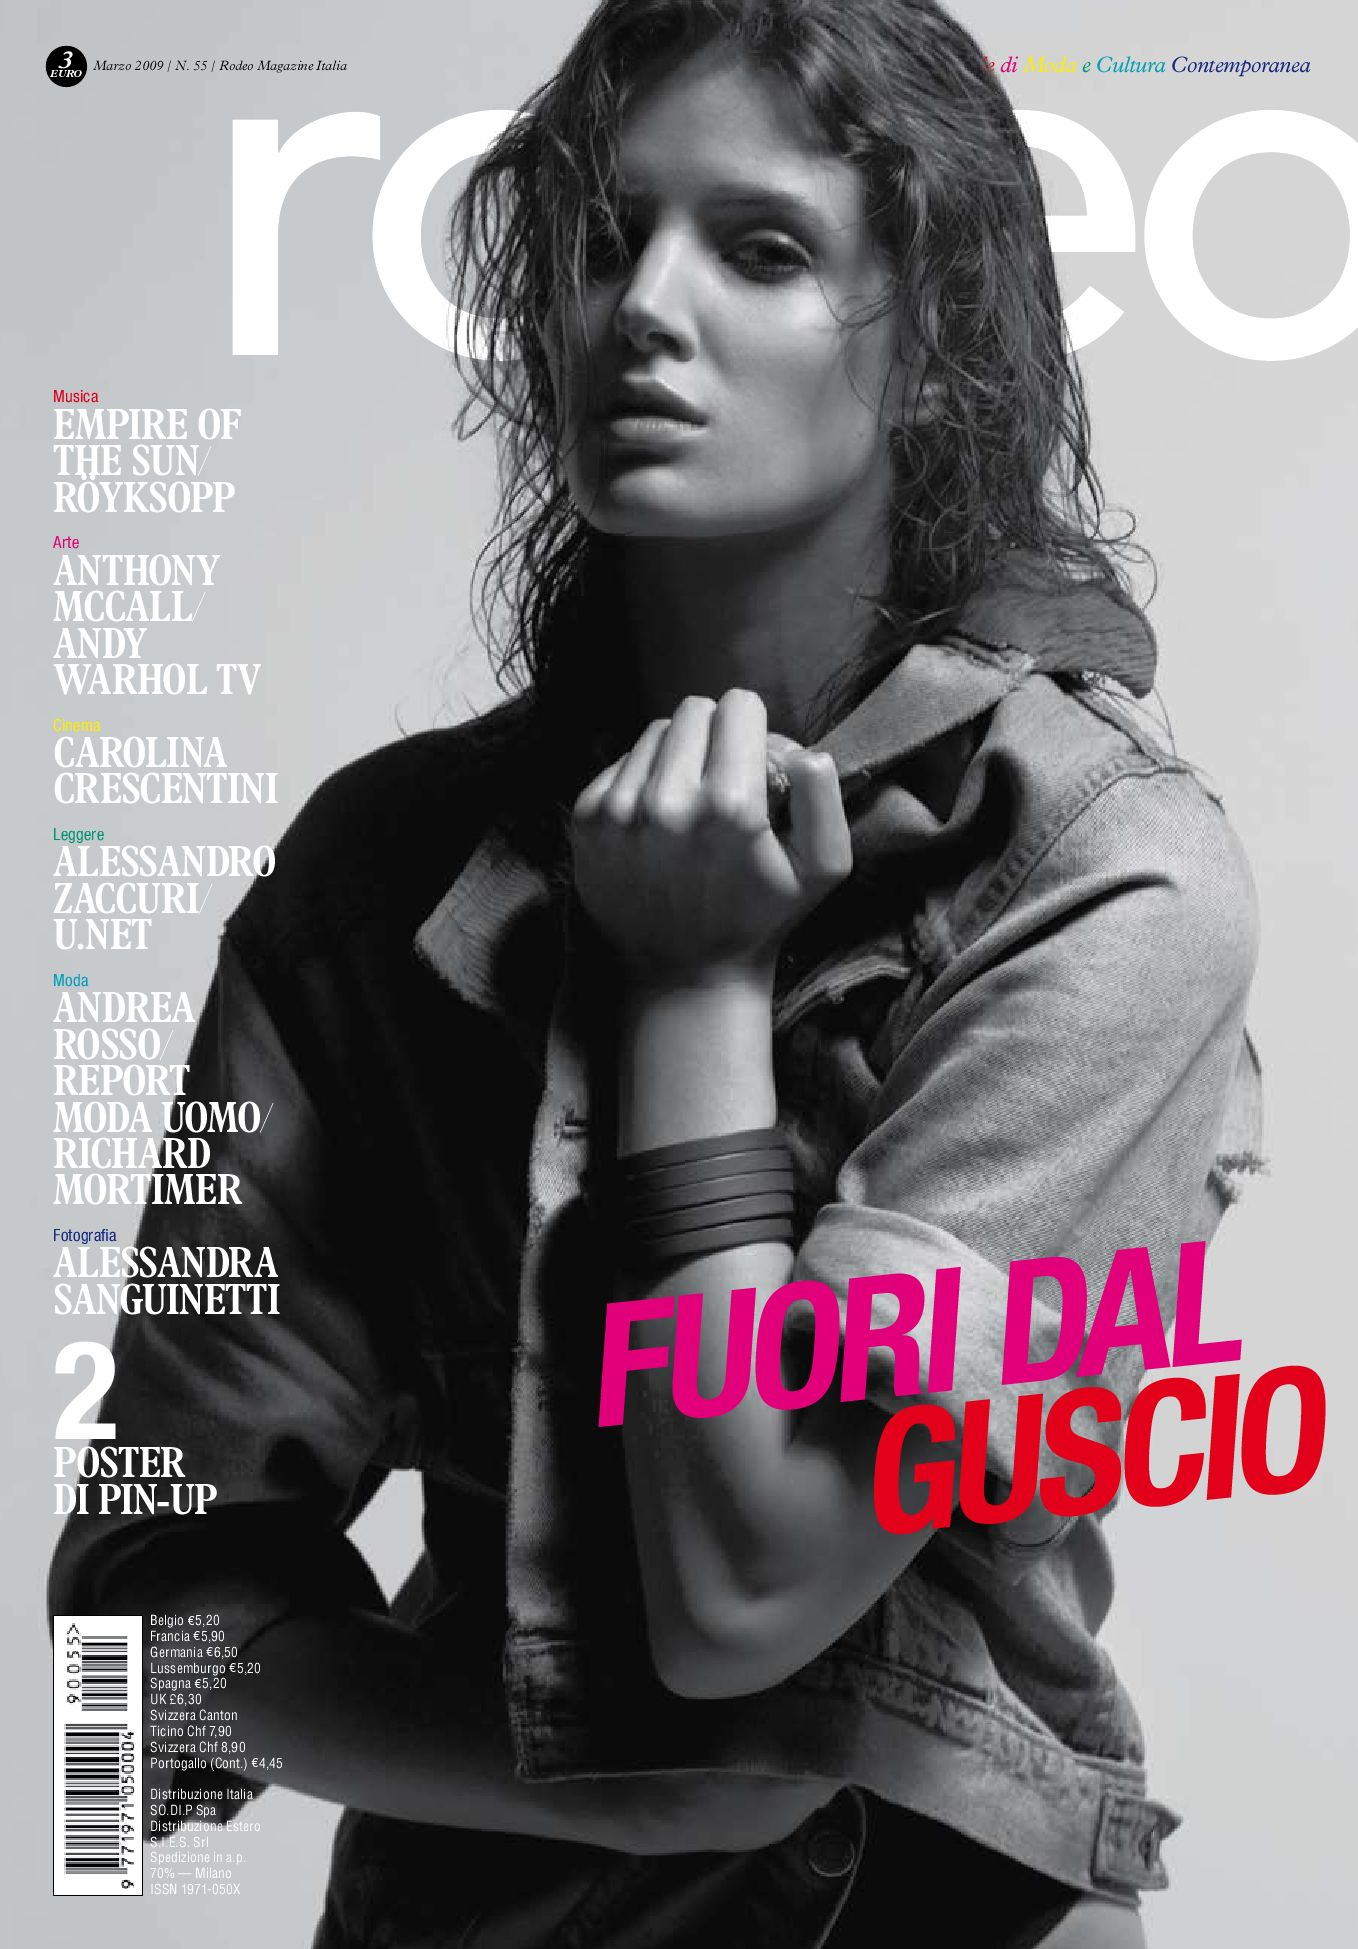 Rodeo Magazine  55 by Rodeo Italy srl - issuu 0467b5210224